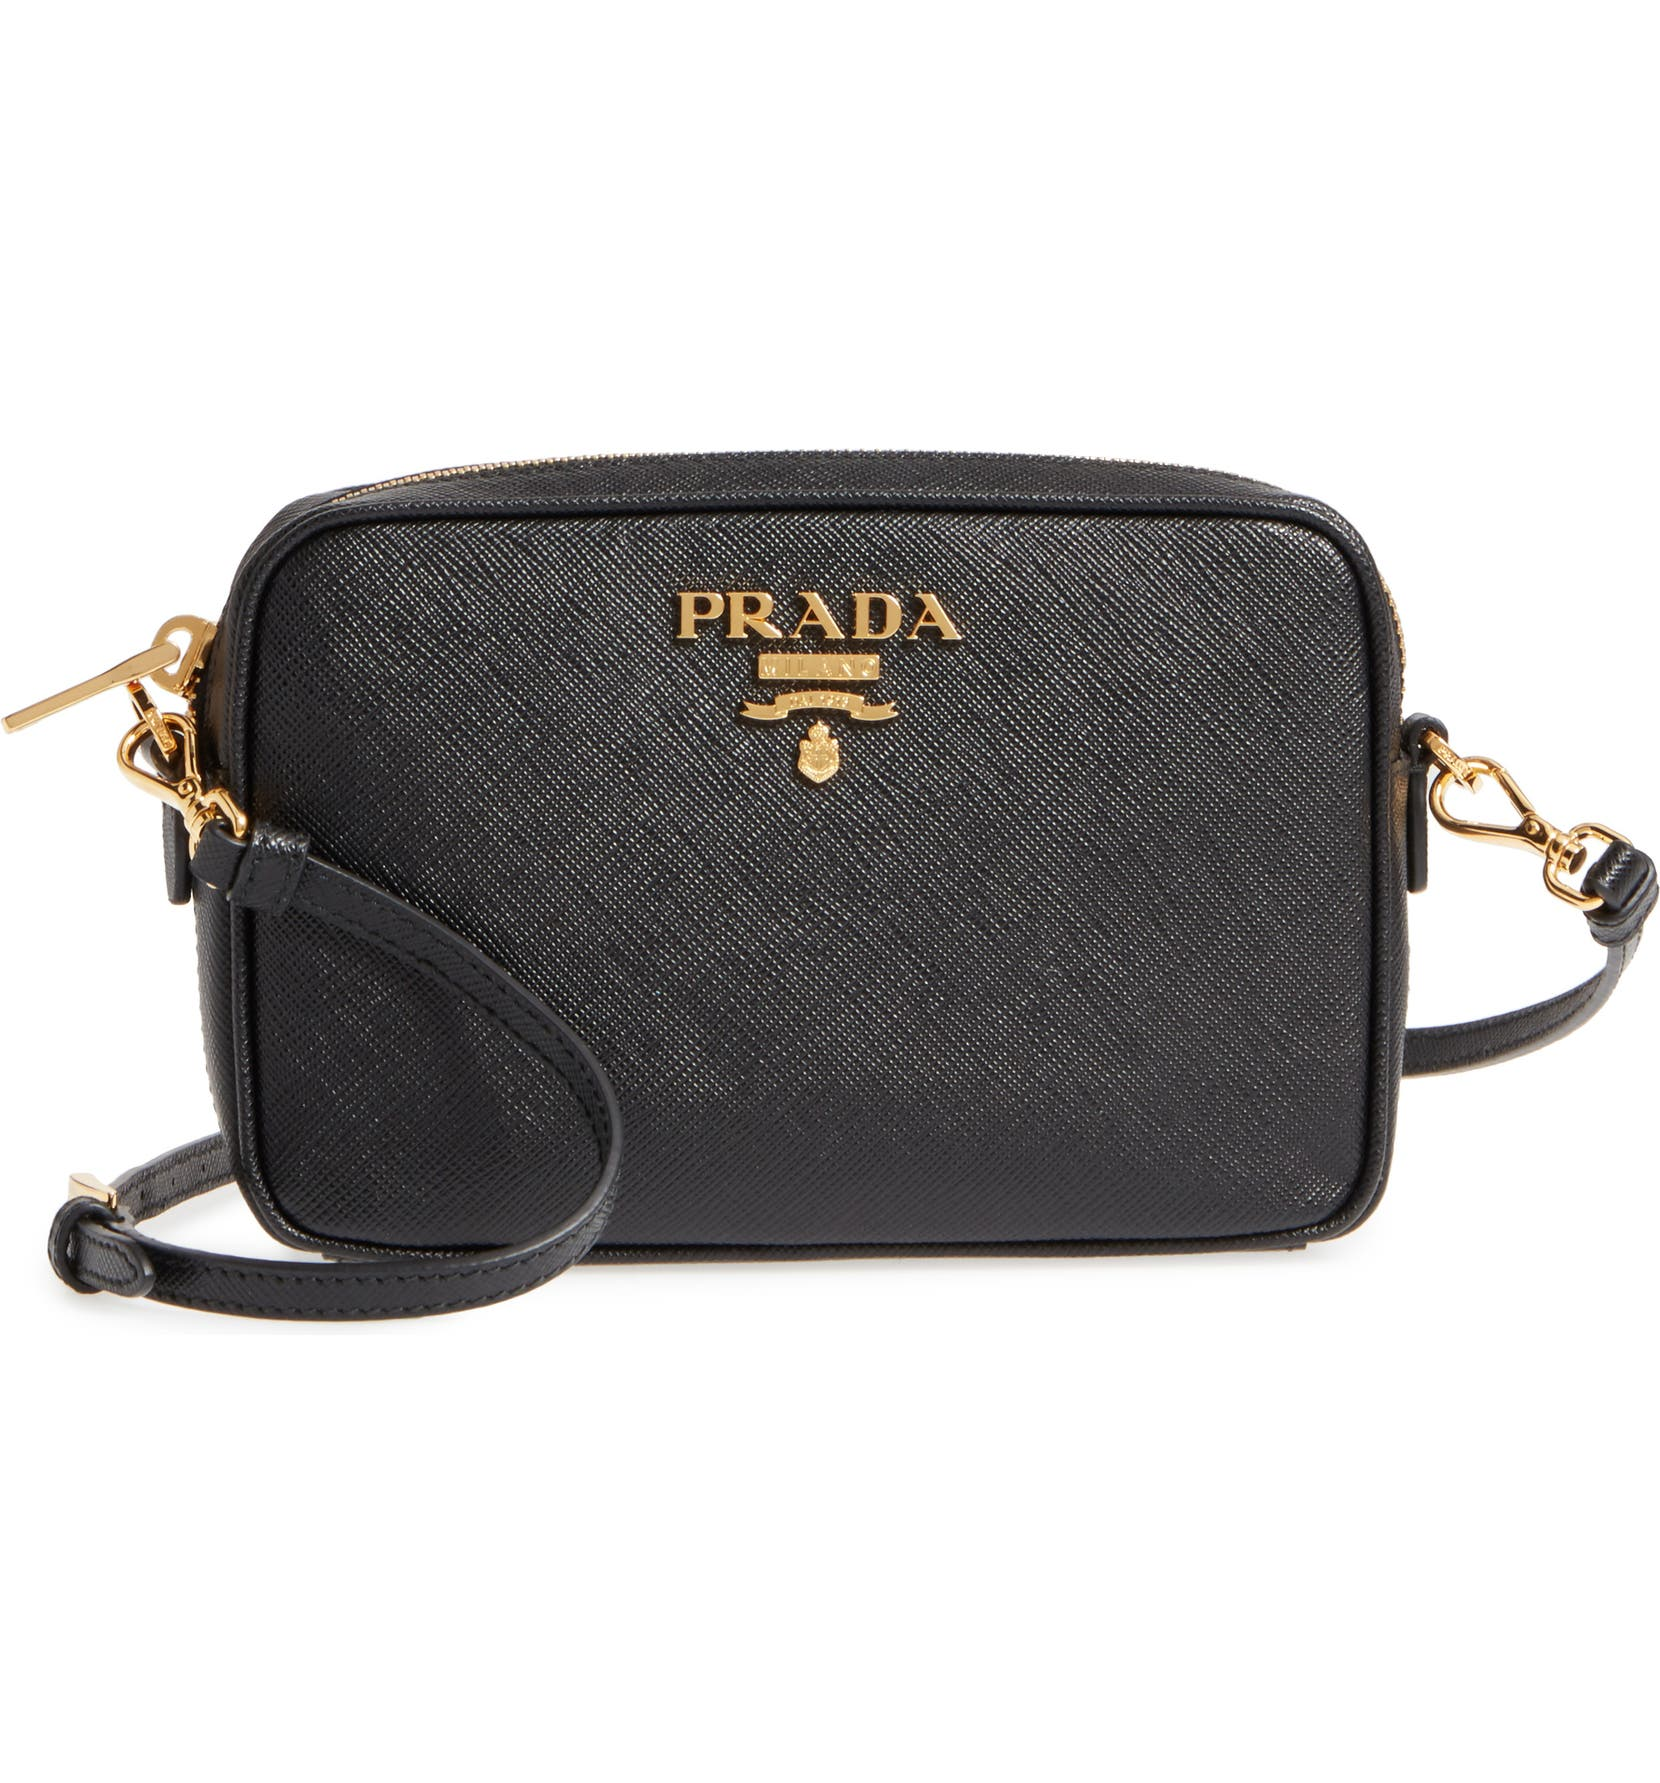 776a7f9d688 Prada Saffiano Leather Camera Bag | Nordstrom